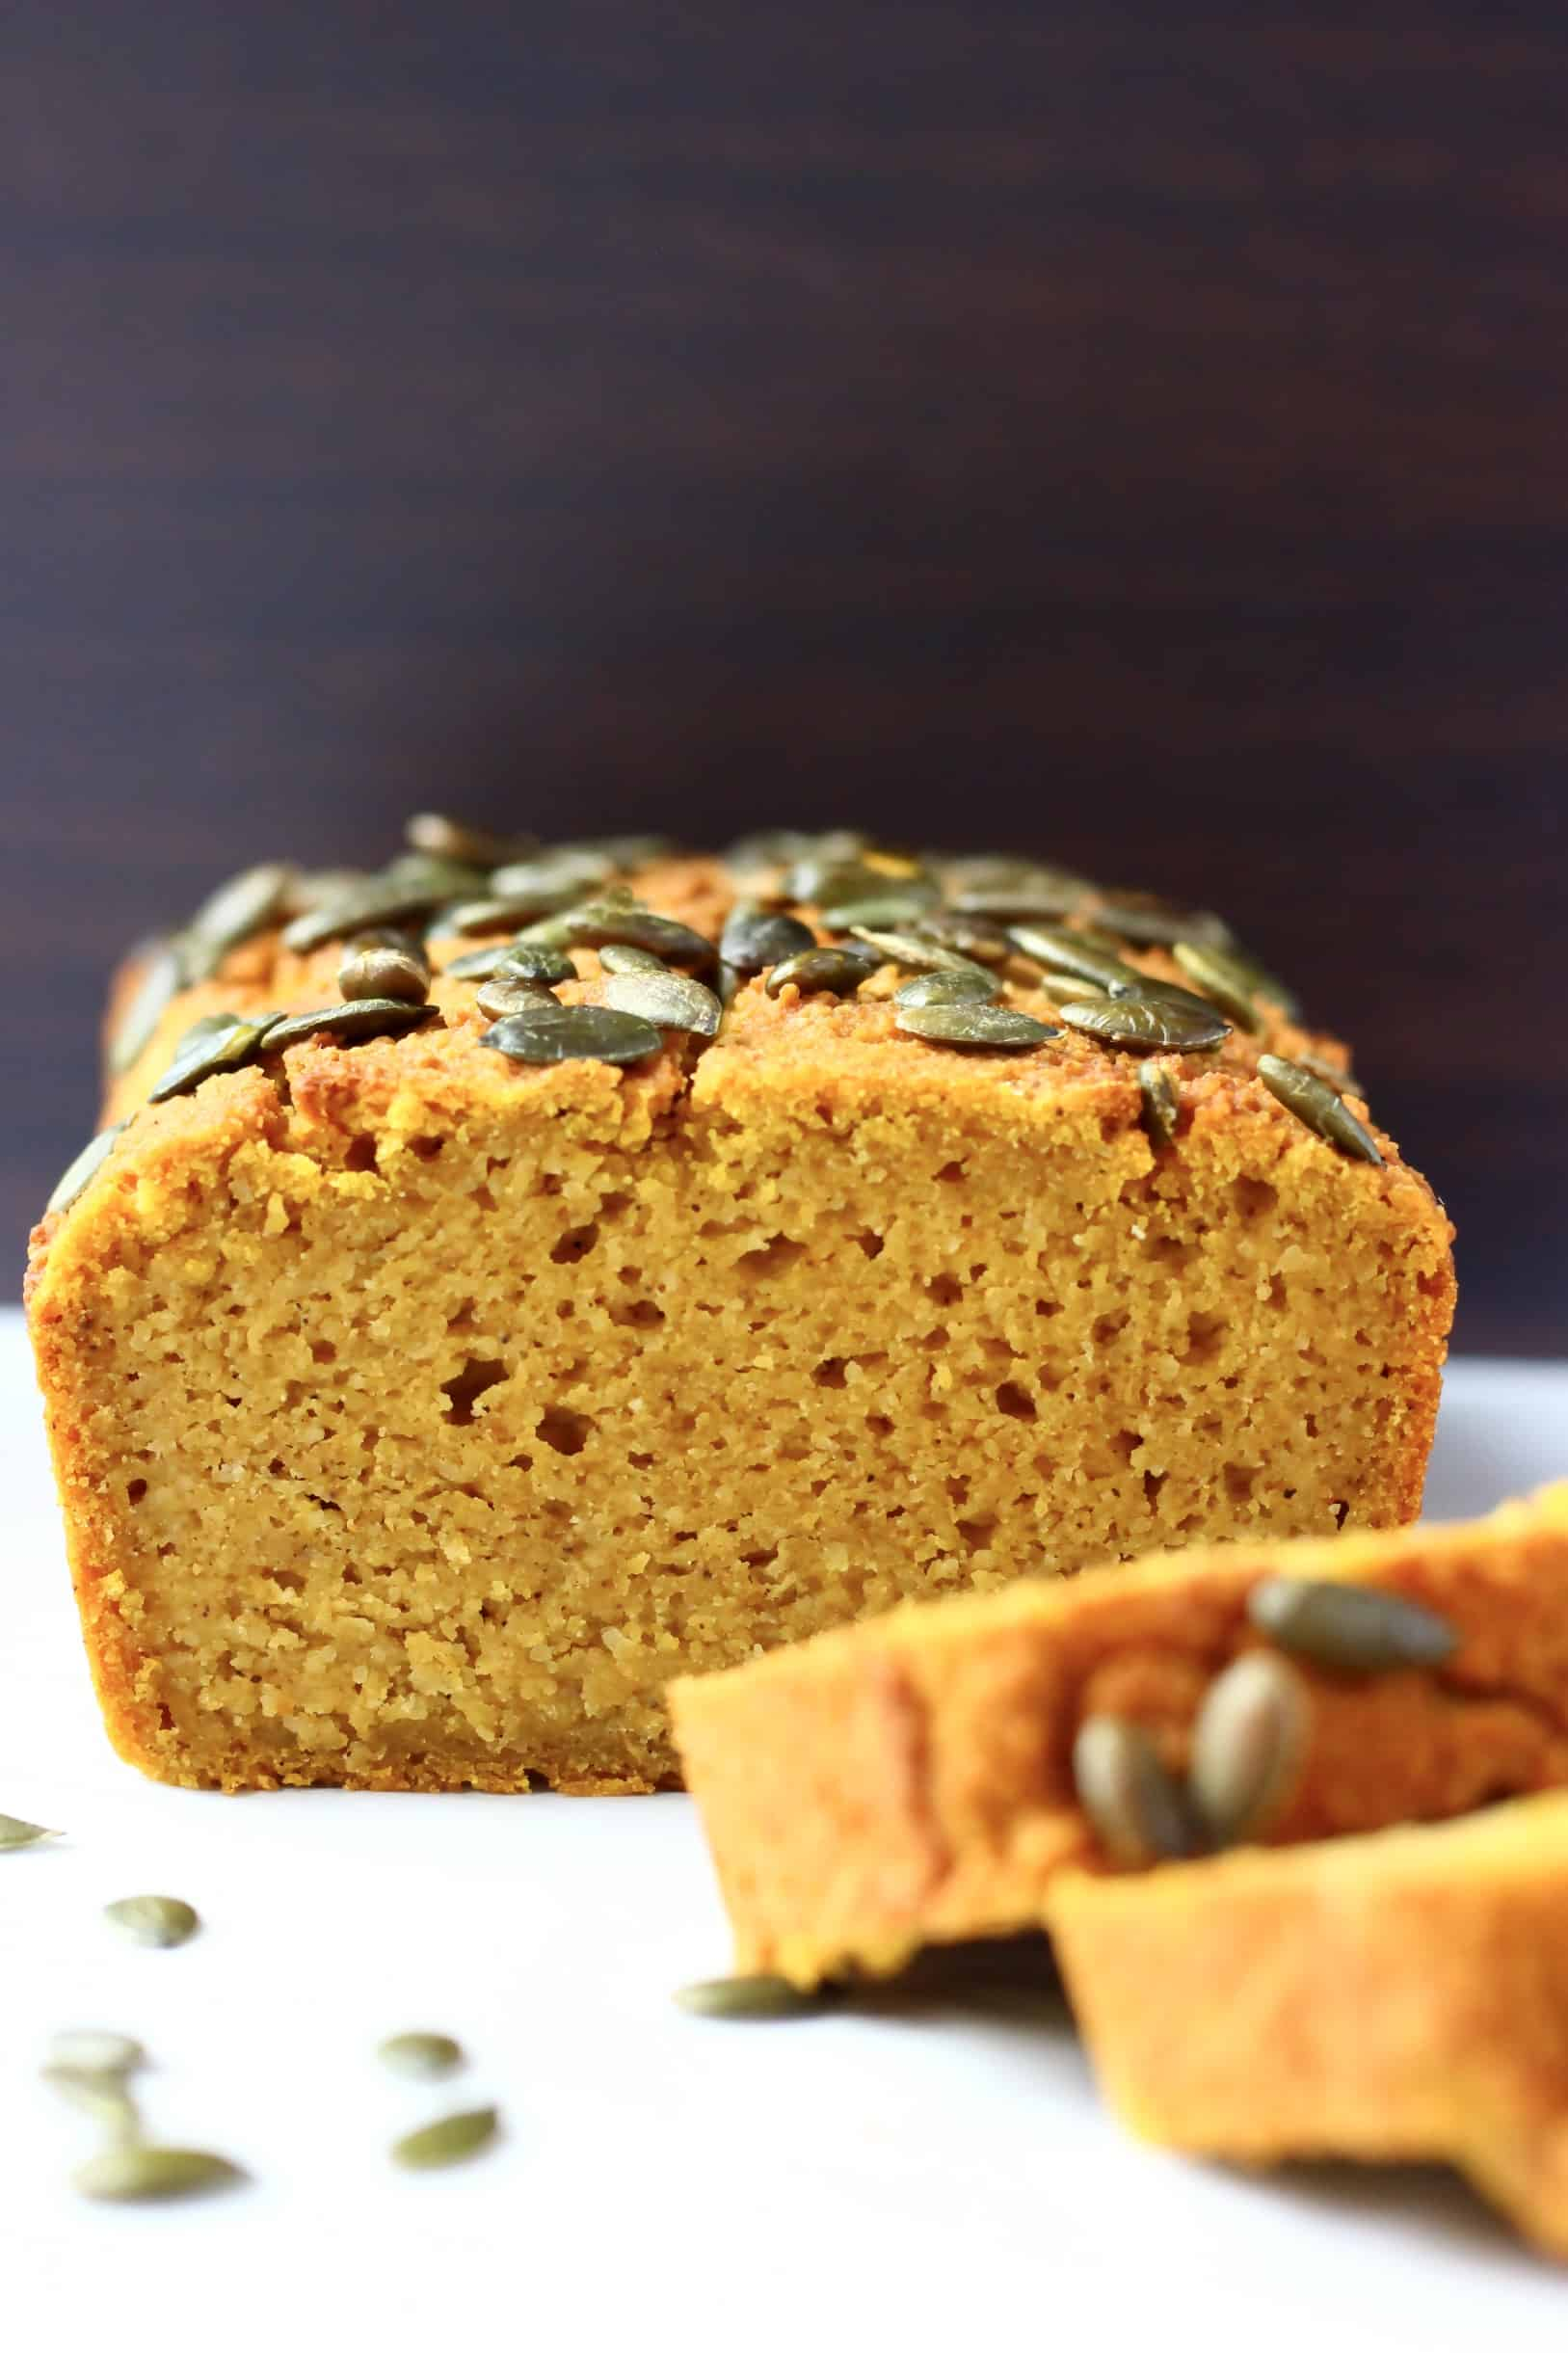 A sliced loaf of gluten-free vegan pumpkin bread topped with pumpkin seeds with two slices next to it